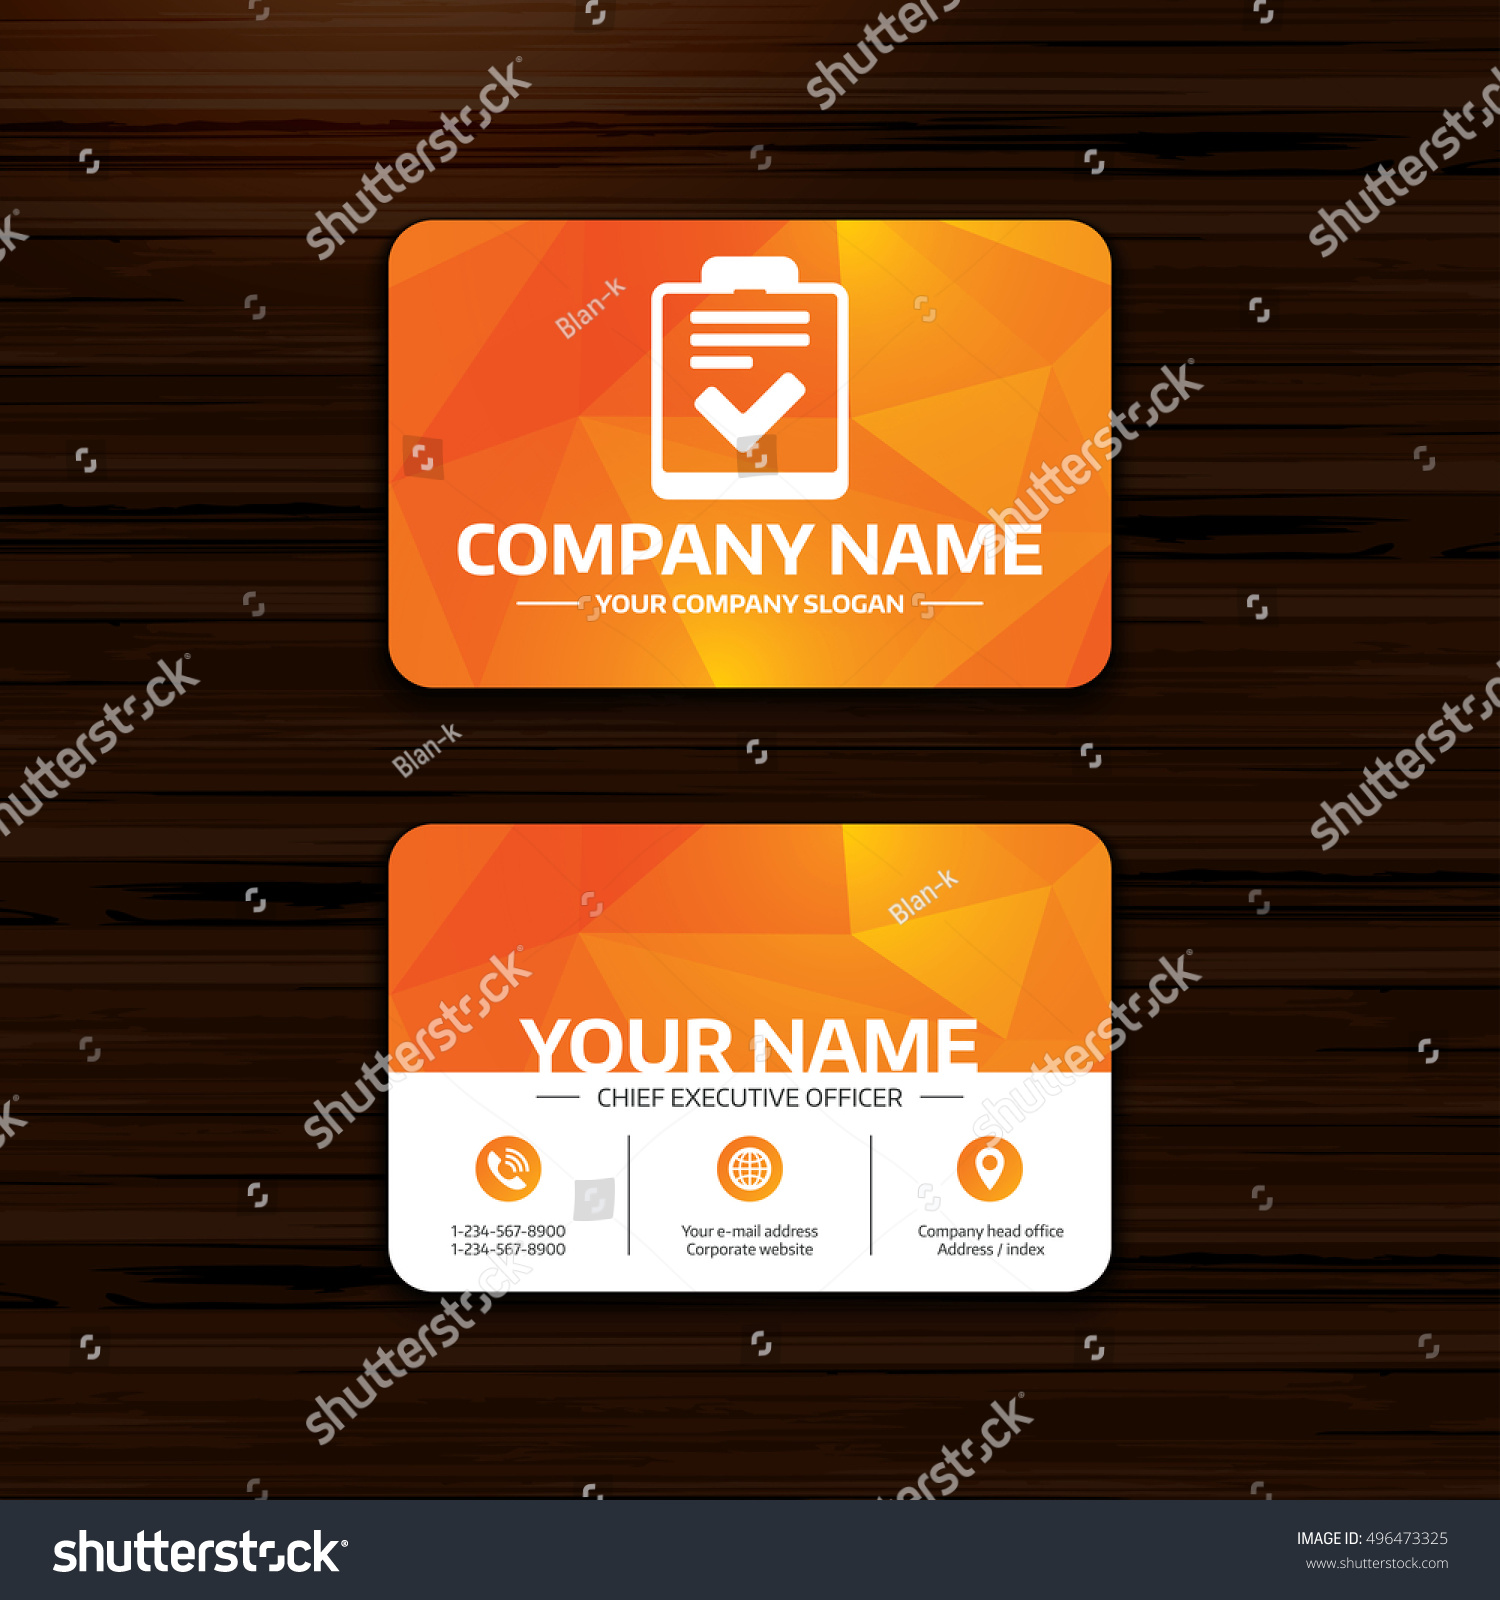 Business visiting card template checklist sign stock vector business visiting card template checklist sign stock vector 496473325 shutterstock reheart Choice Image